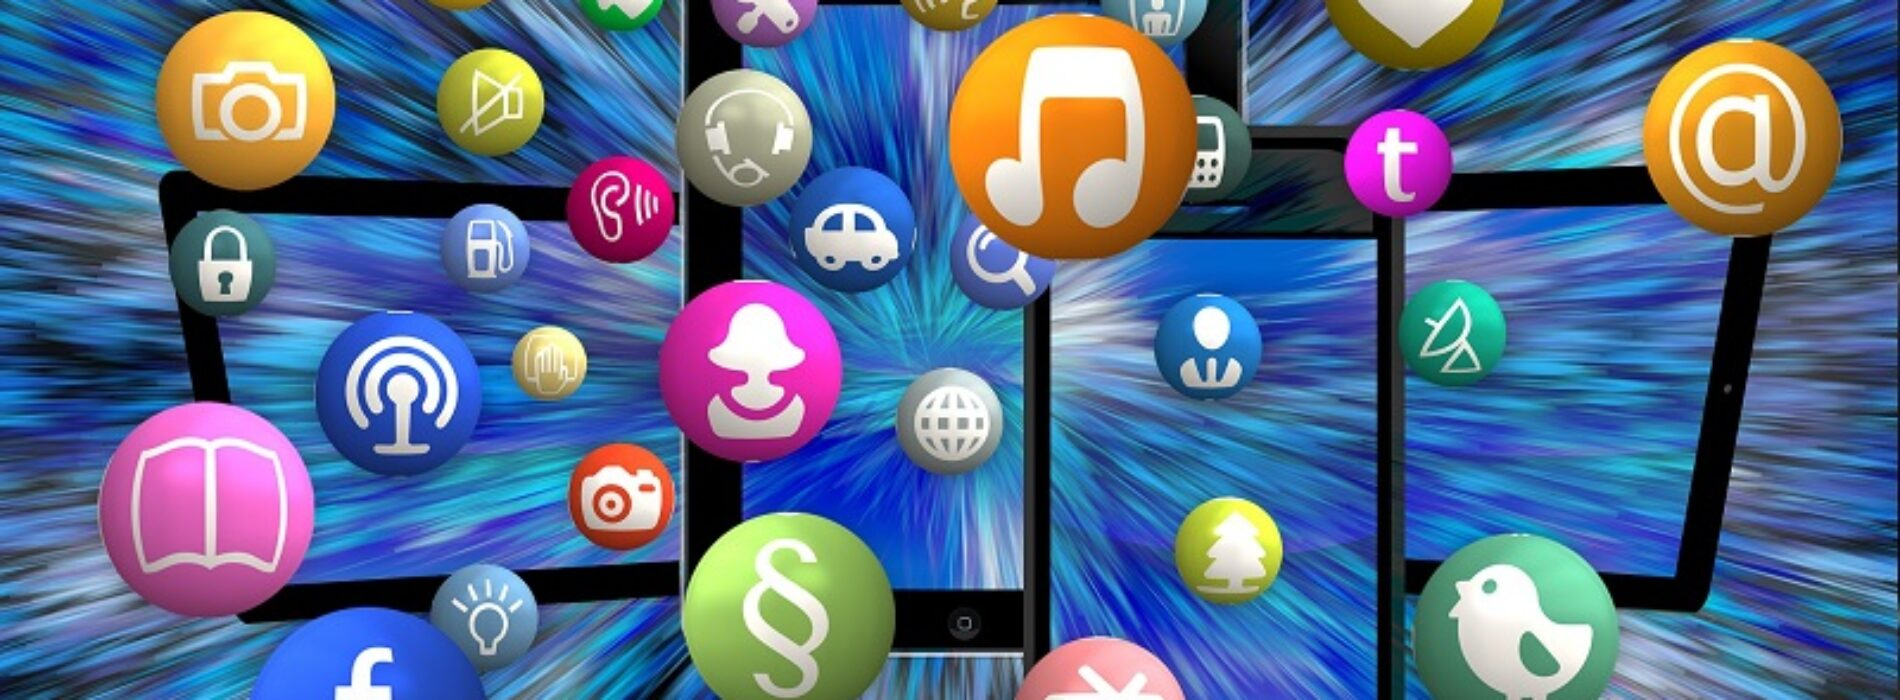 Accessible apps: 10 fun accessible game and activity apps